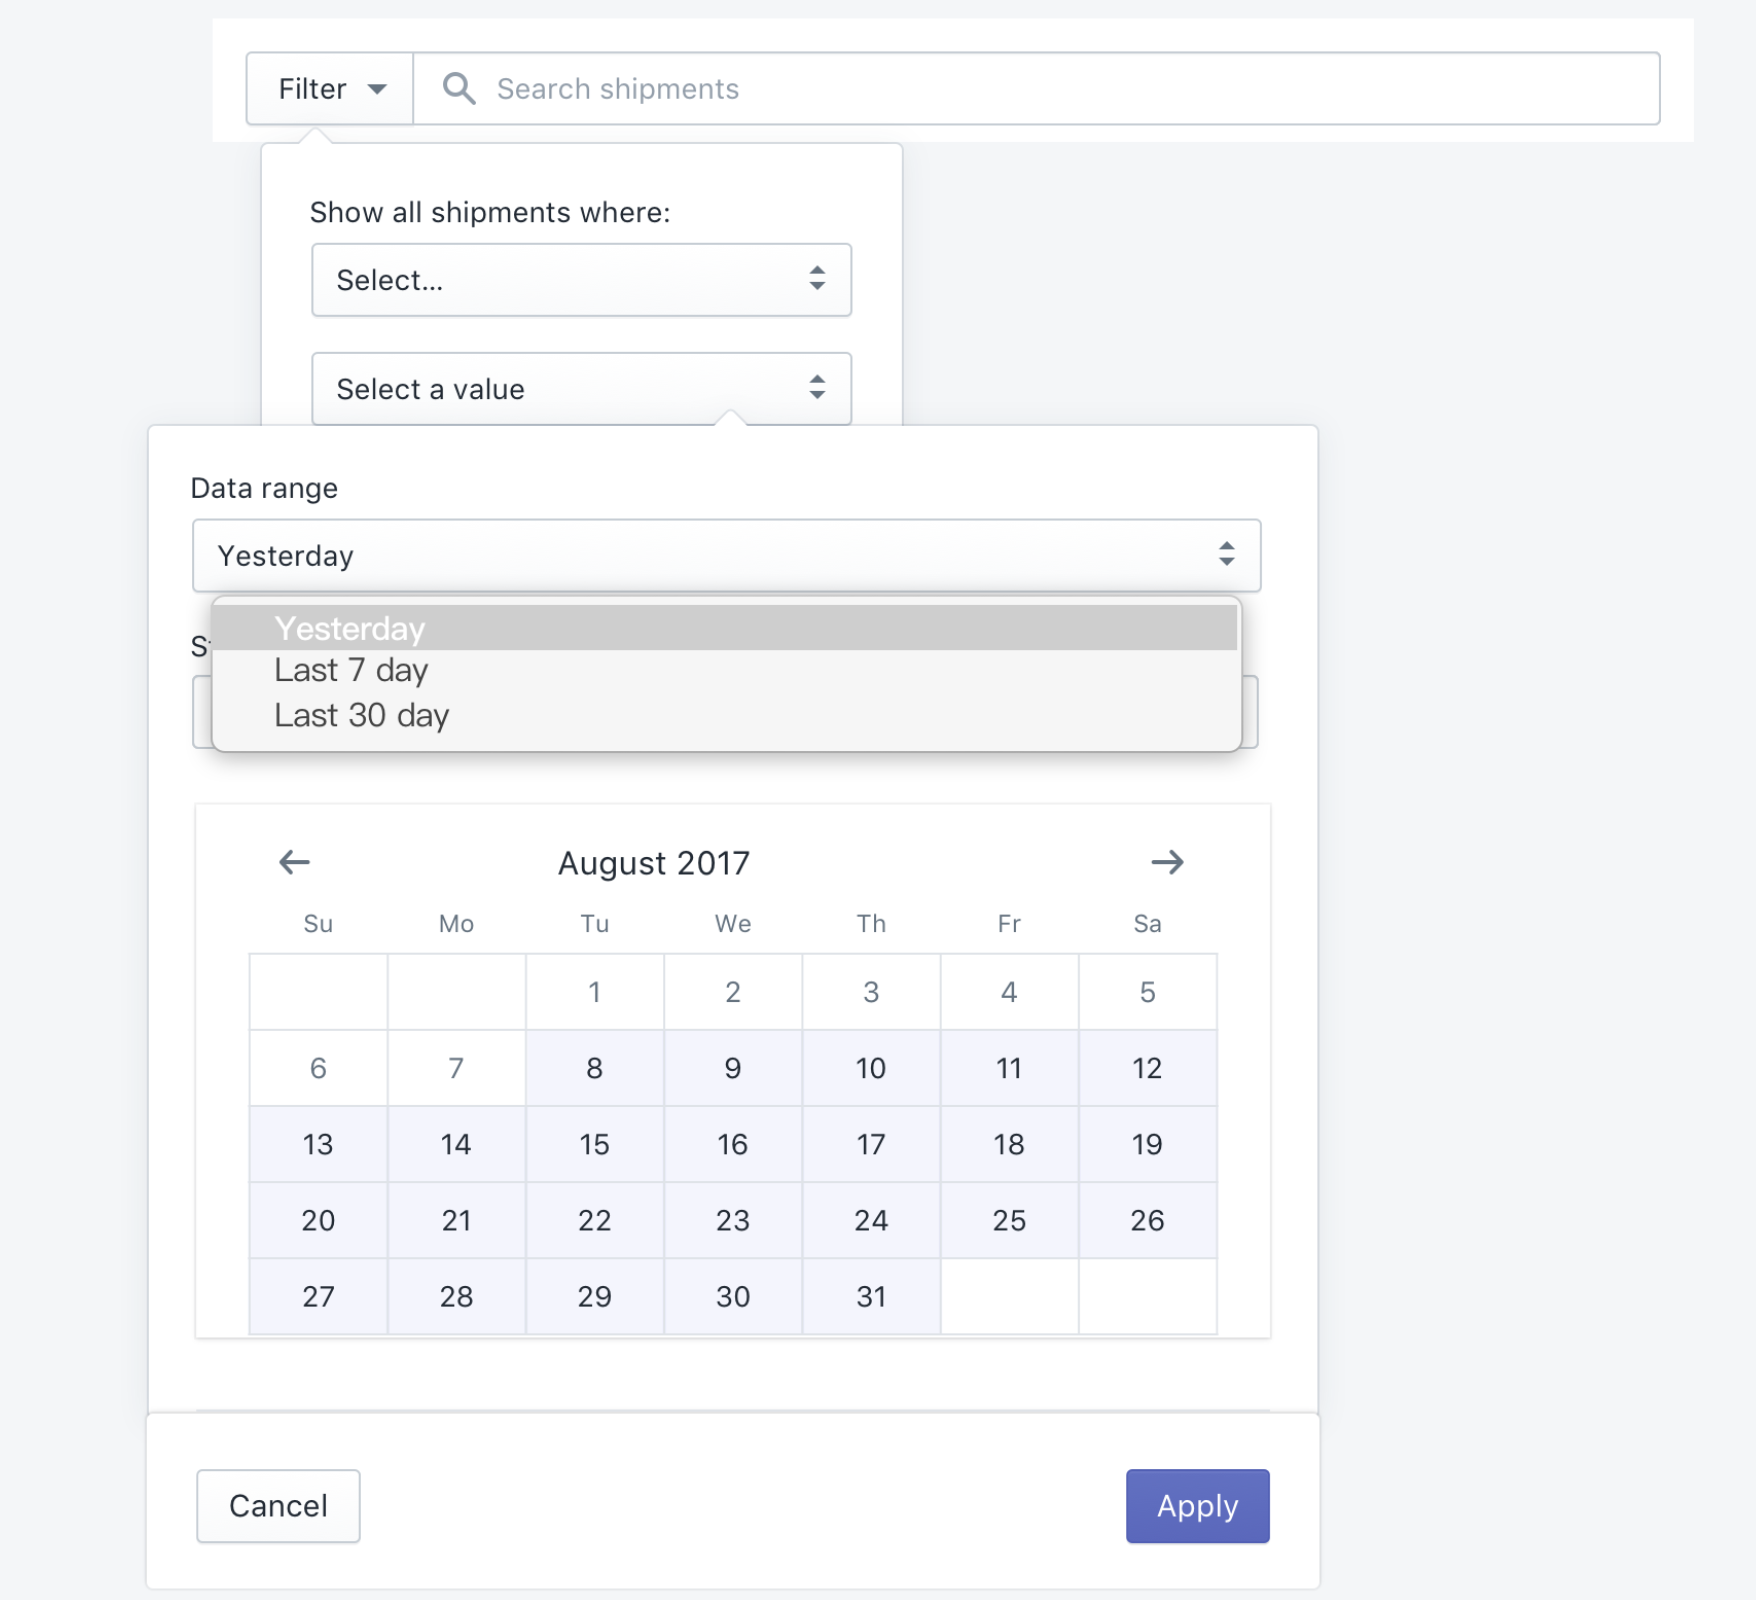 Add date picker to filter · Issue #405 · Shopify/polaris